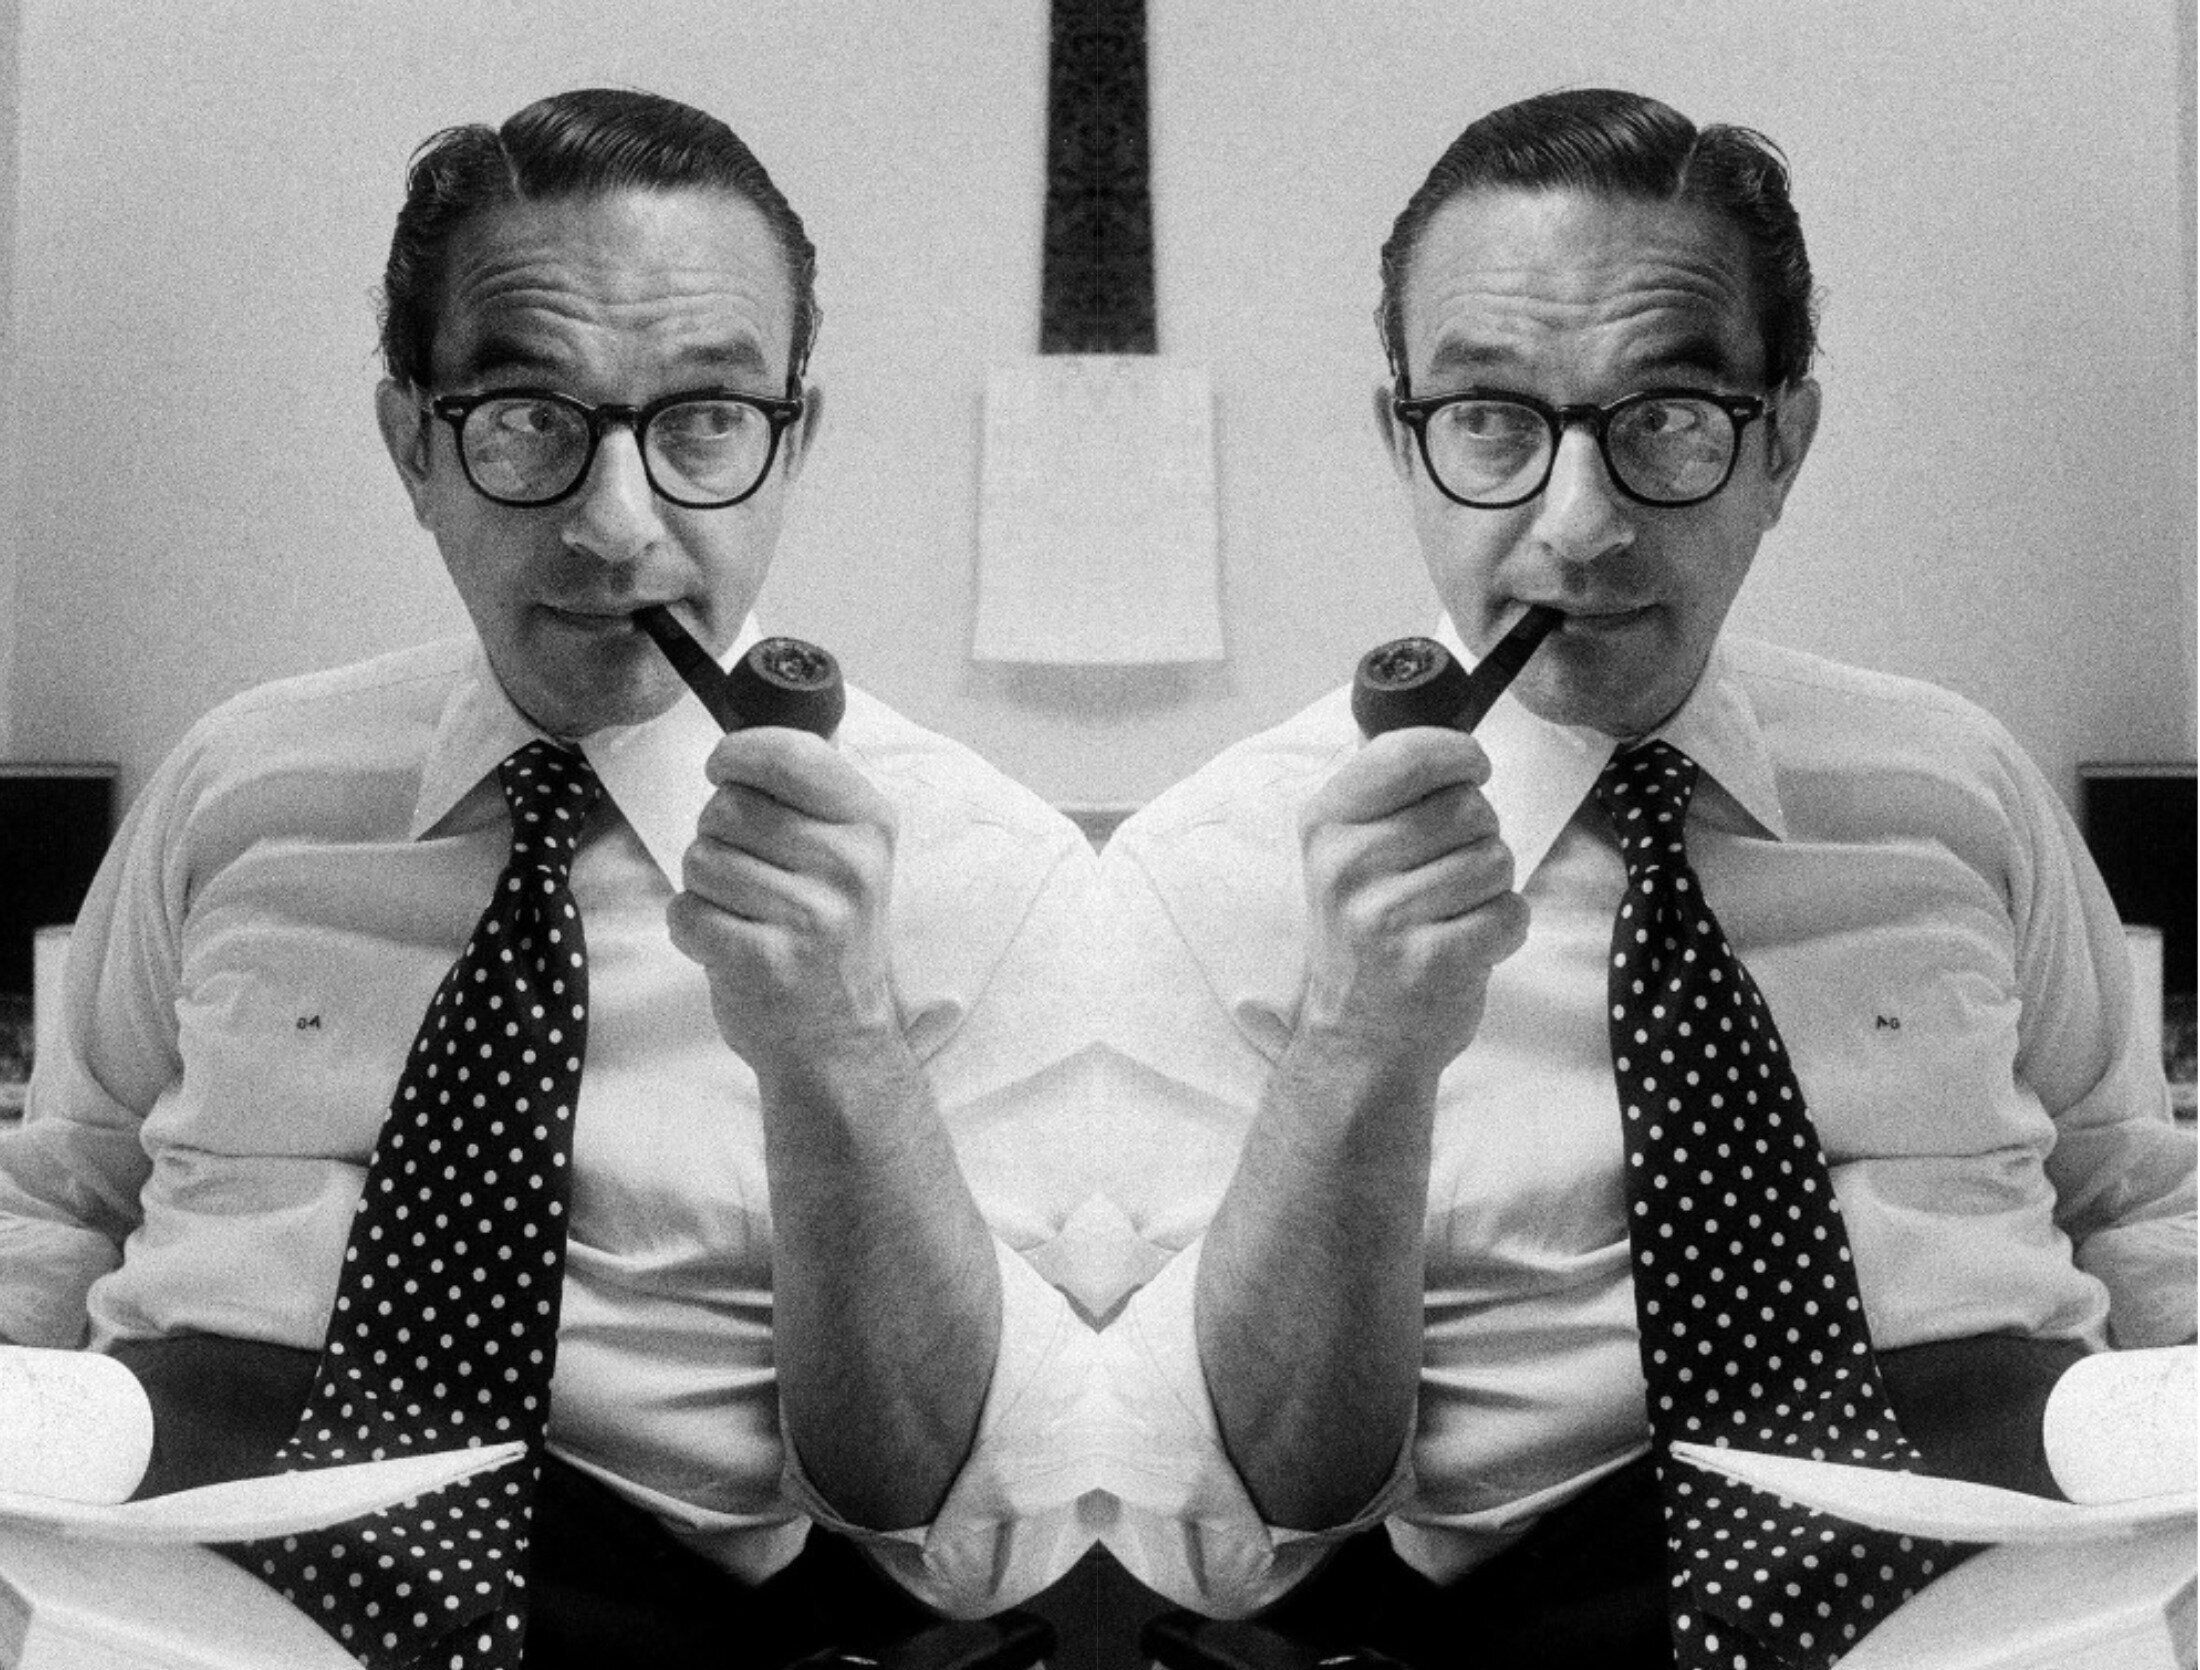 (Alan Greenspan, former long-time chairman of the US Federal Reserve)